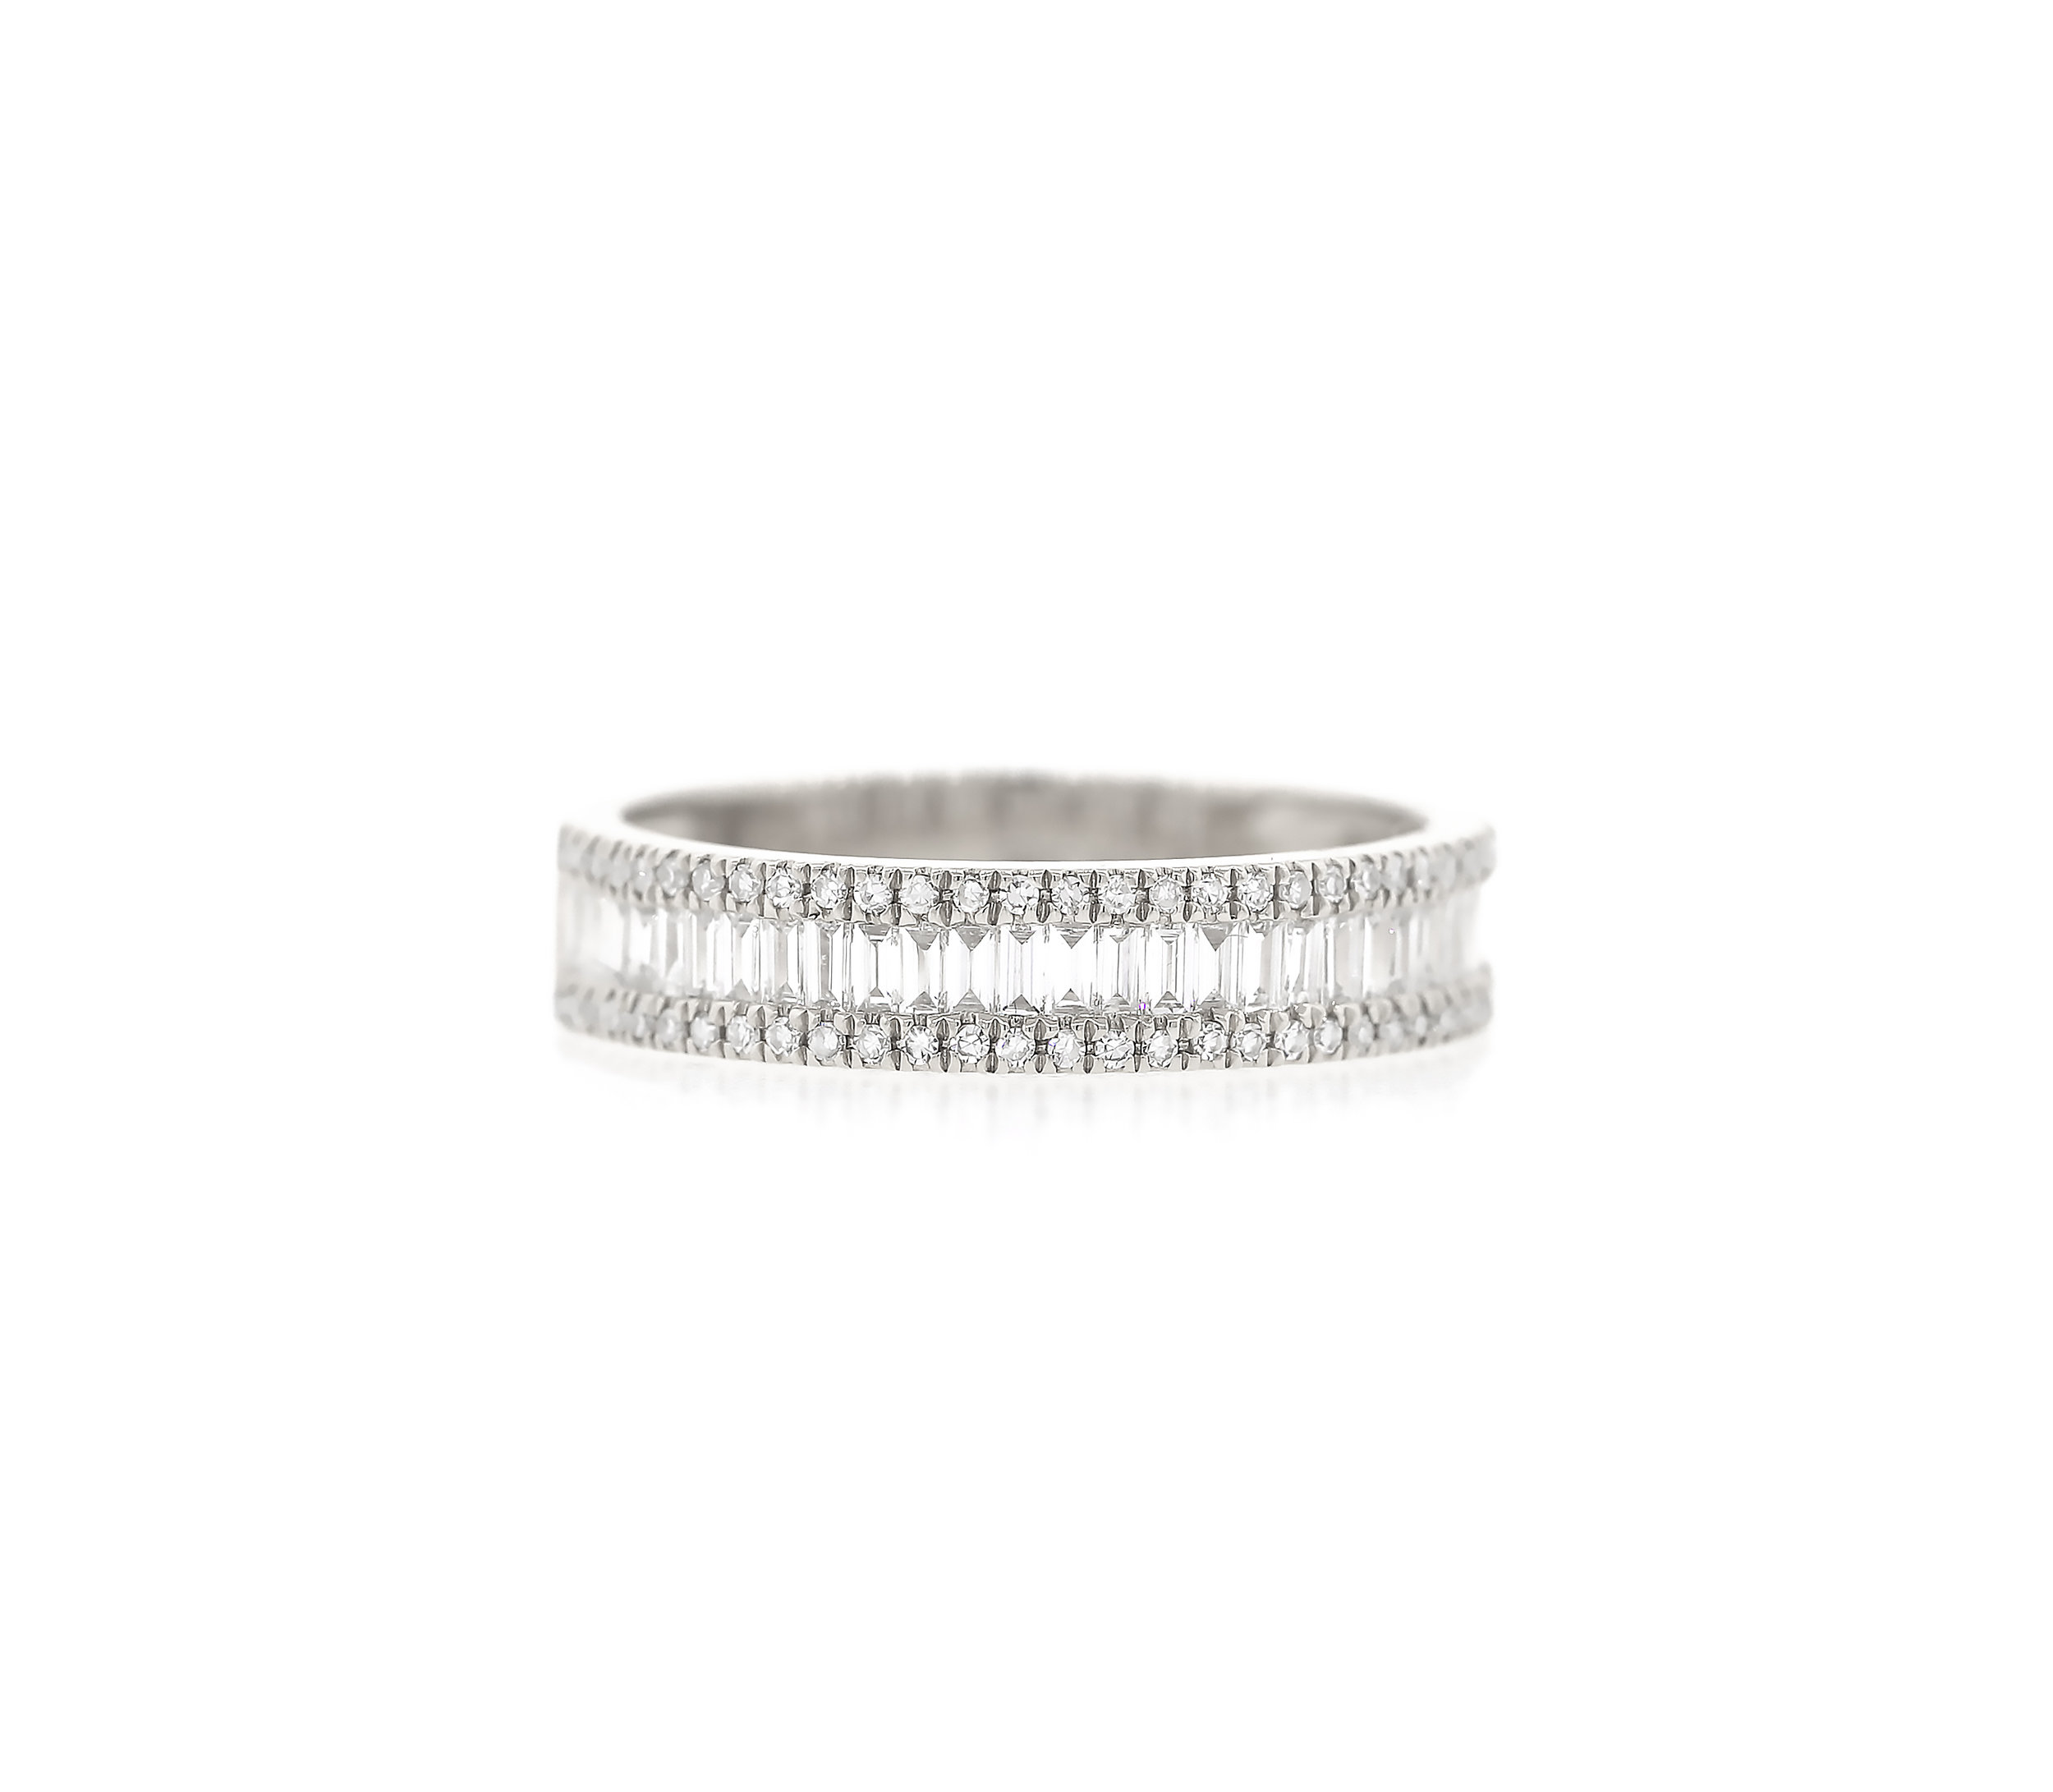 Baguette and pave diamond ring thick 3 front.jpg